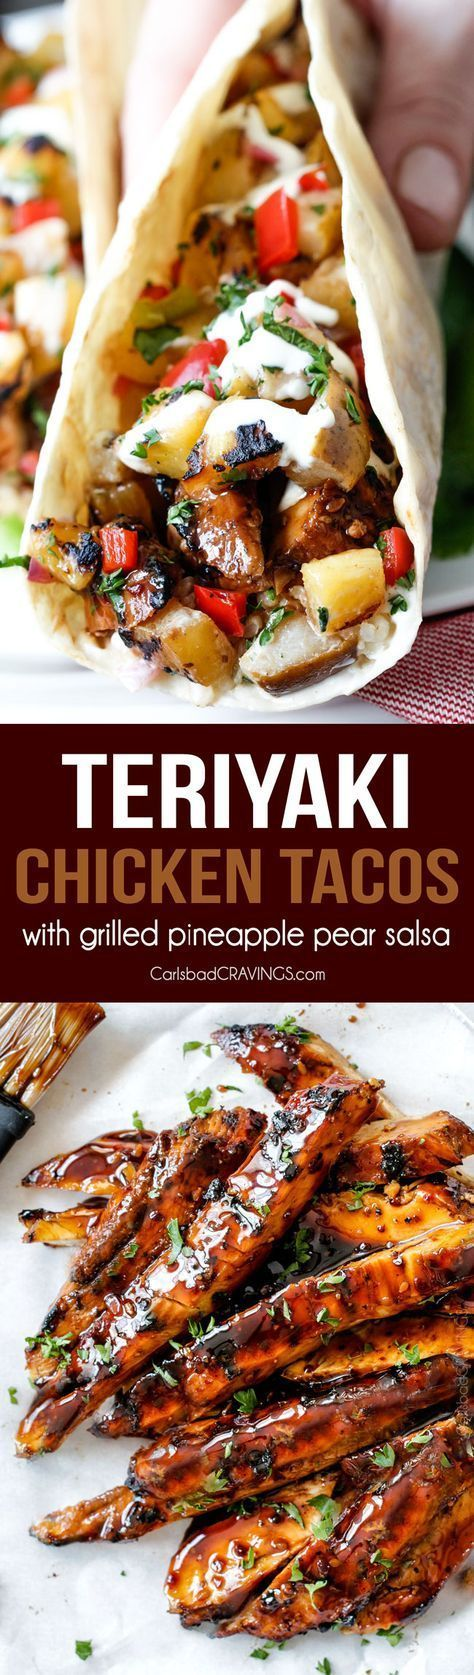 Teriyaki Chicken Tacos smothered with the BEST easy teriyaki sauce and piled with Grilled Pineapple Pear Salsa will be your new favorite taco! Company worthy but everyday easy! @McCormickSpice (Teriyaki Chicken)